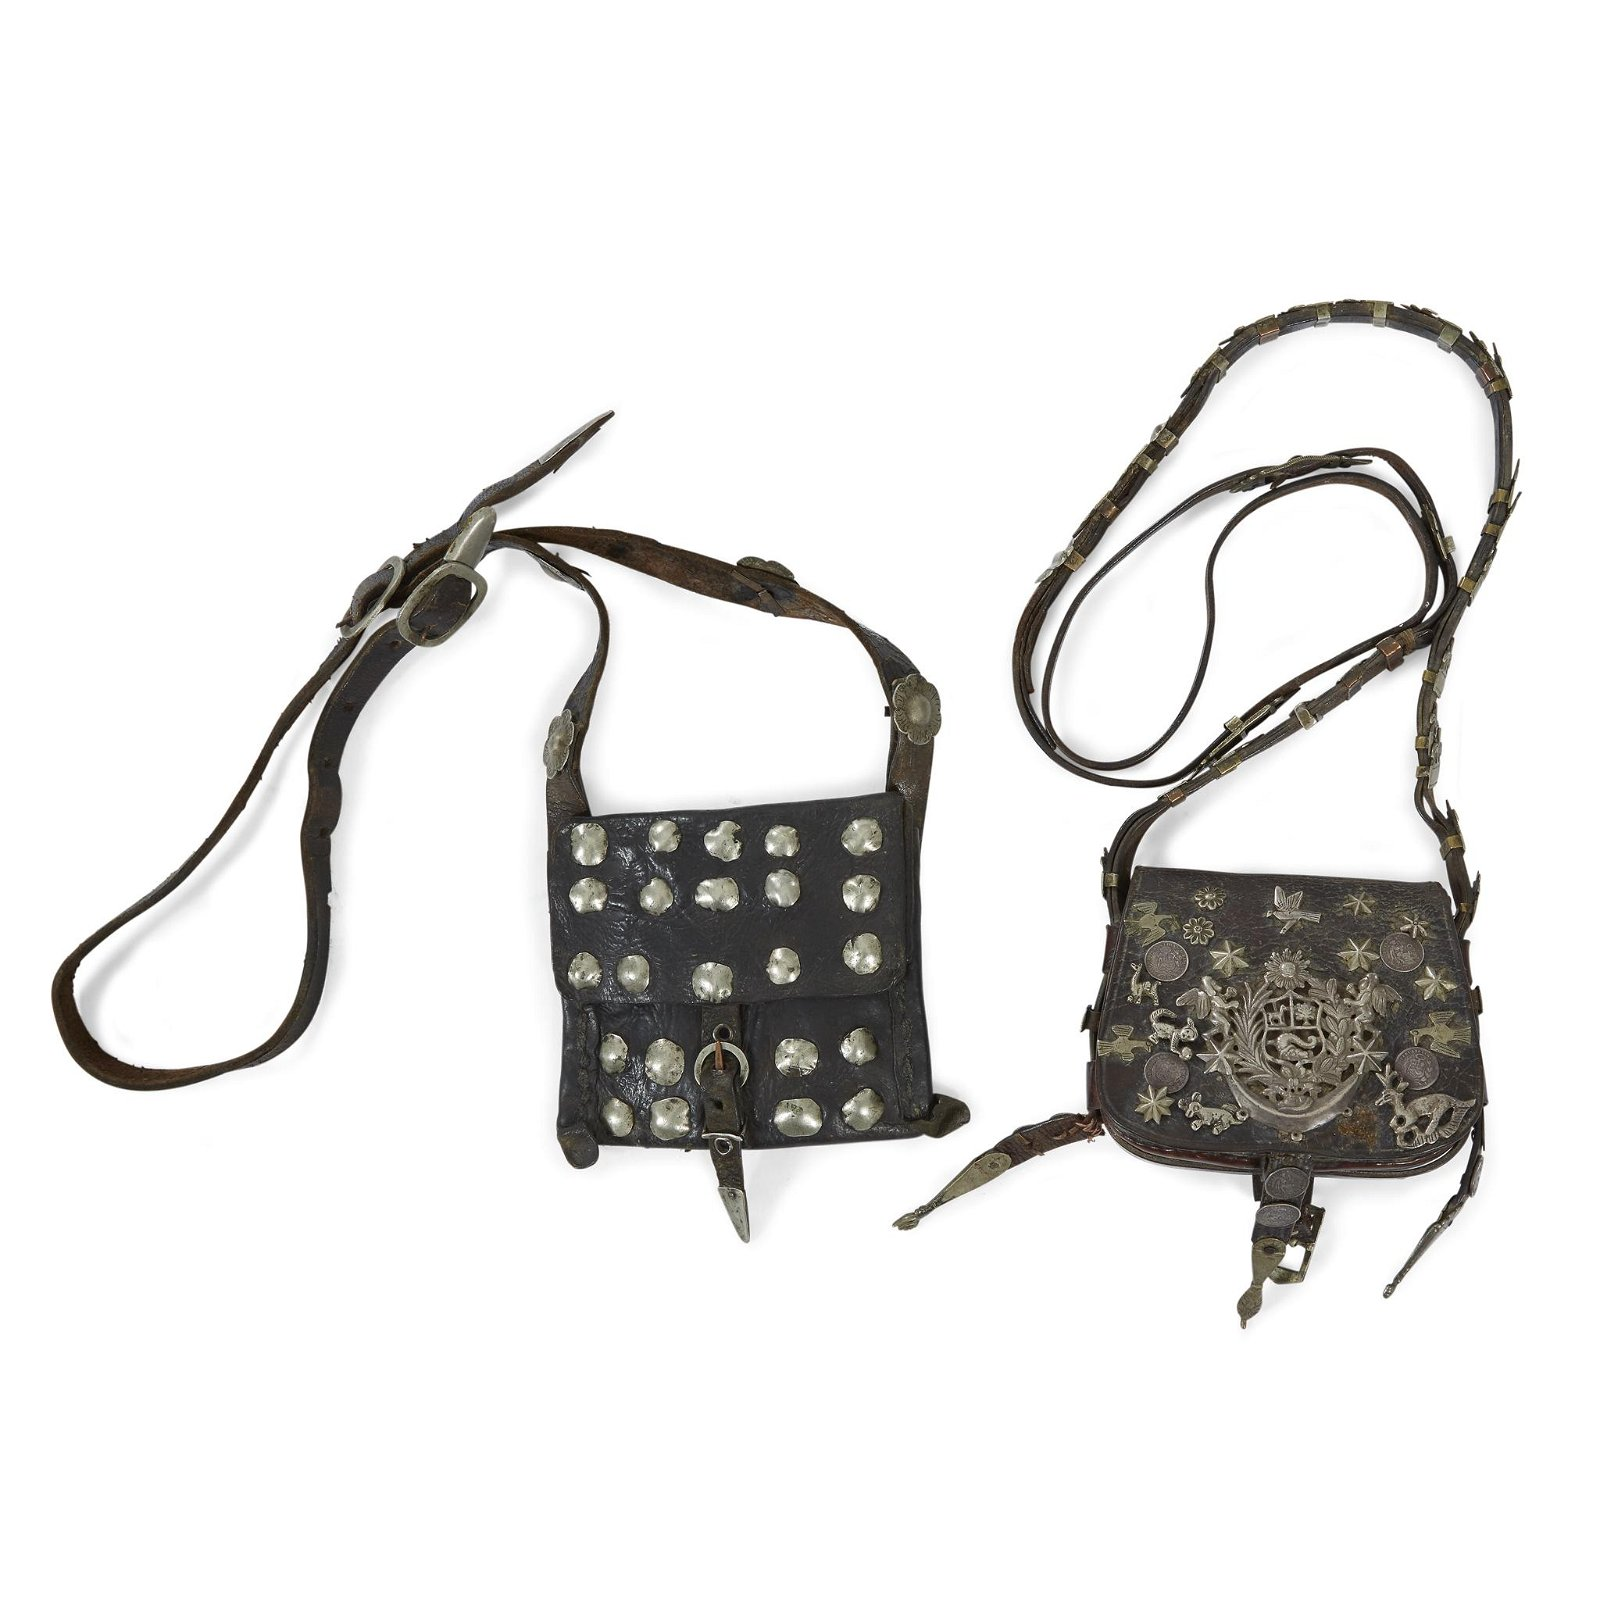 Two leather bags with silver studs and milagros, South